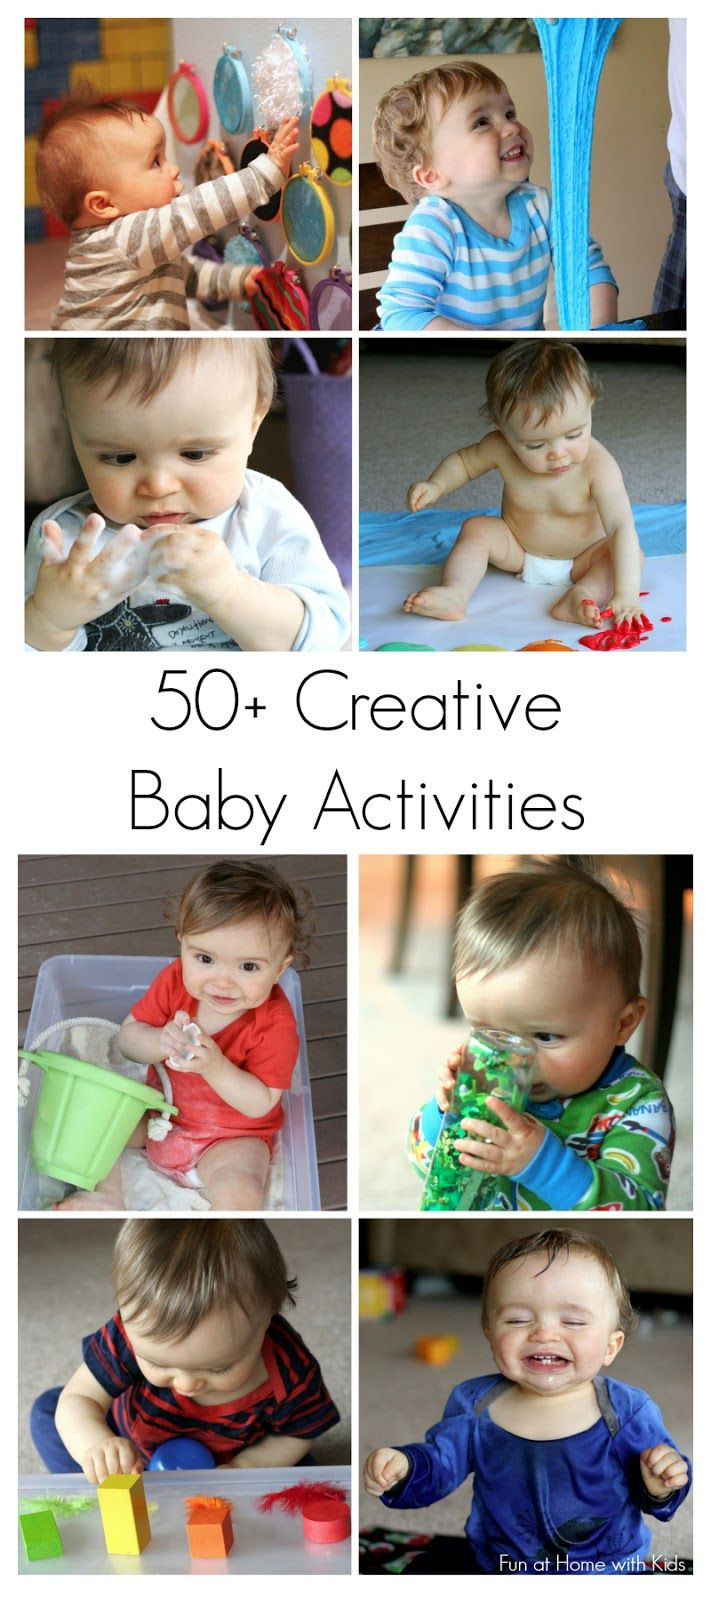 Best ideas about Kids Creative Activities At Home . Save or Pin 1347 best FUN AT HOME WITH KIDS blog activities images on Now.